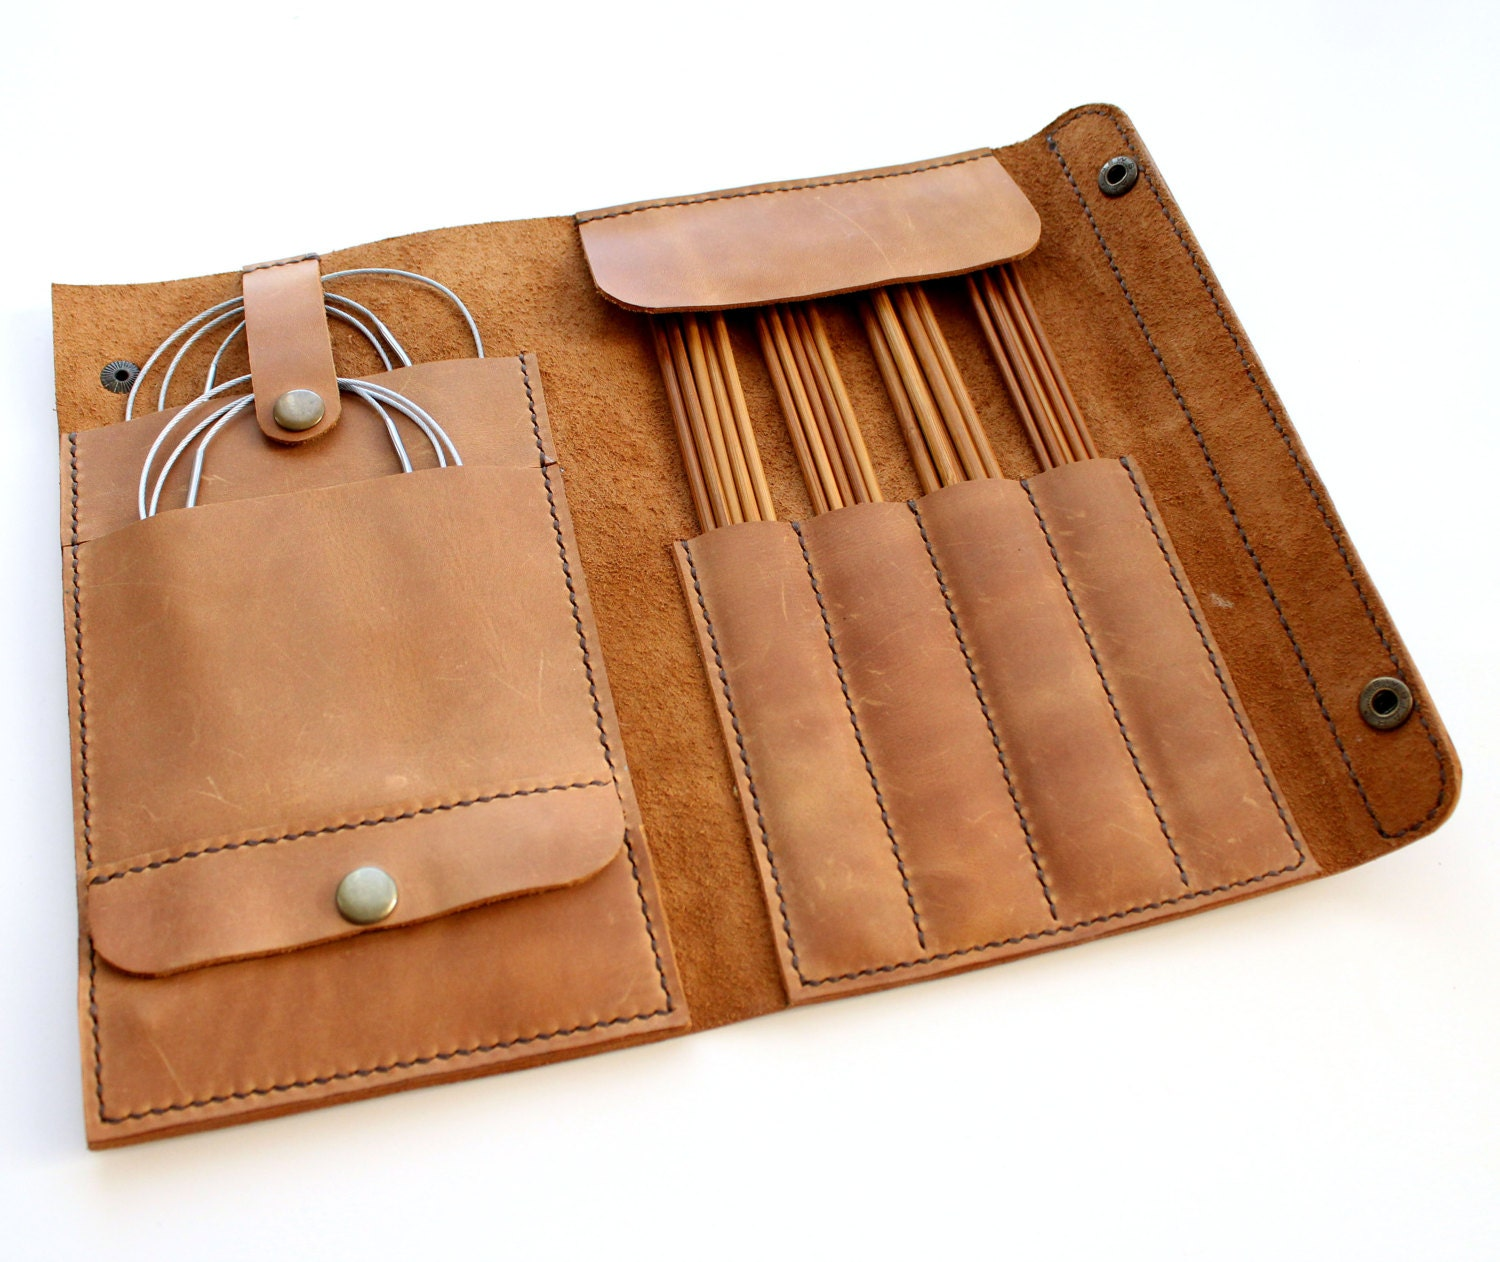 Knitting Needle Storage Case Pattern : Leather needle case handmade knitting organizer